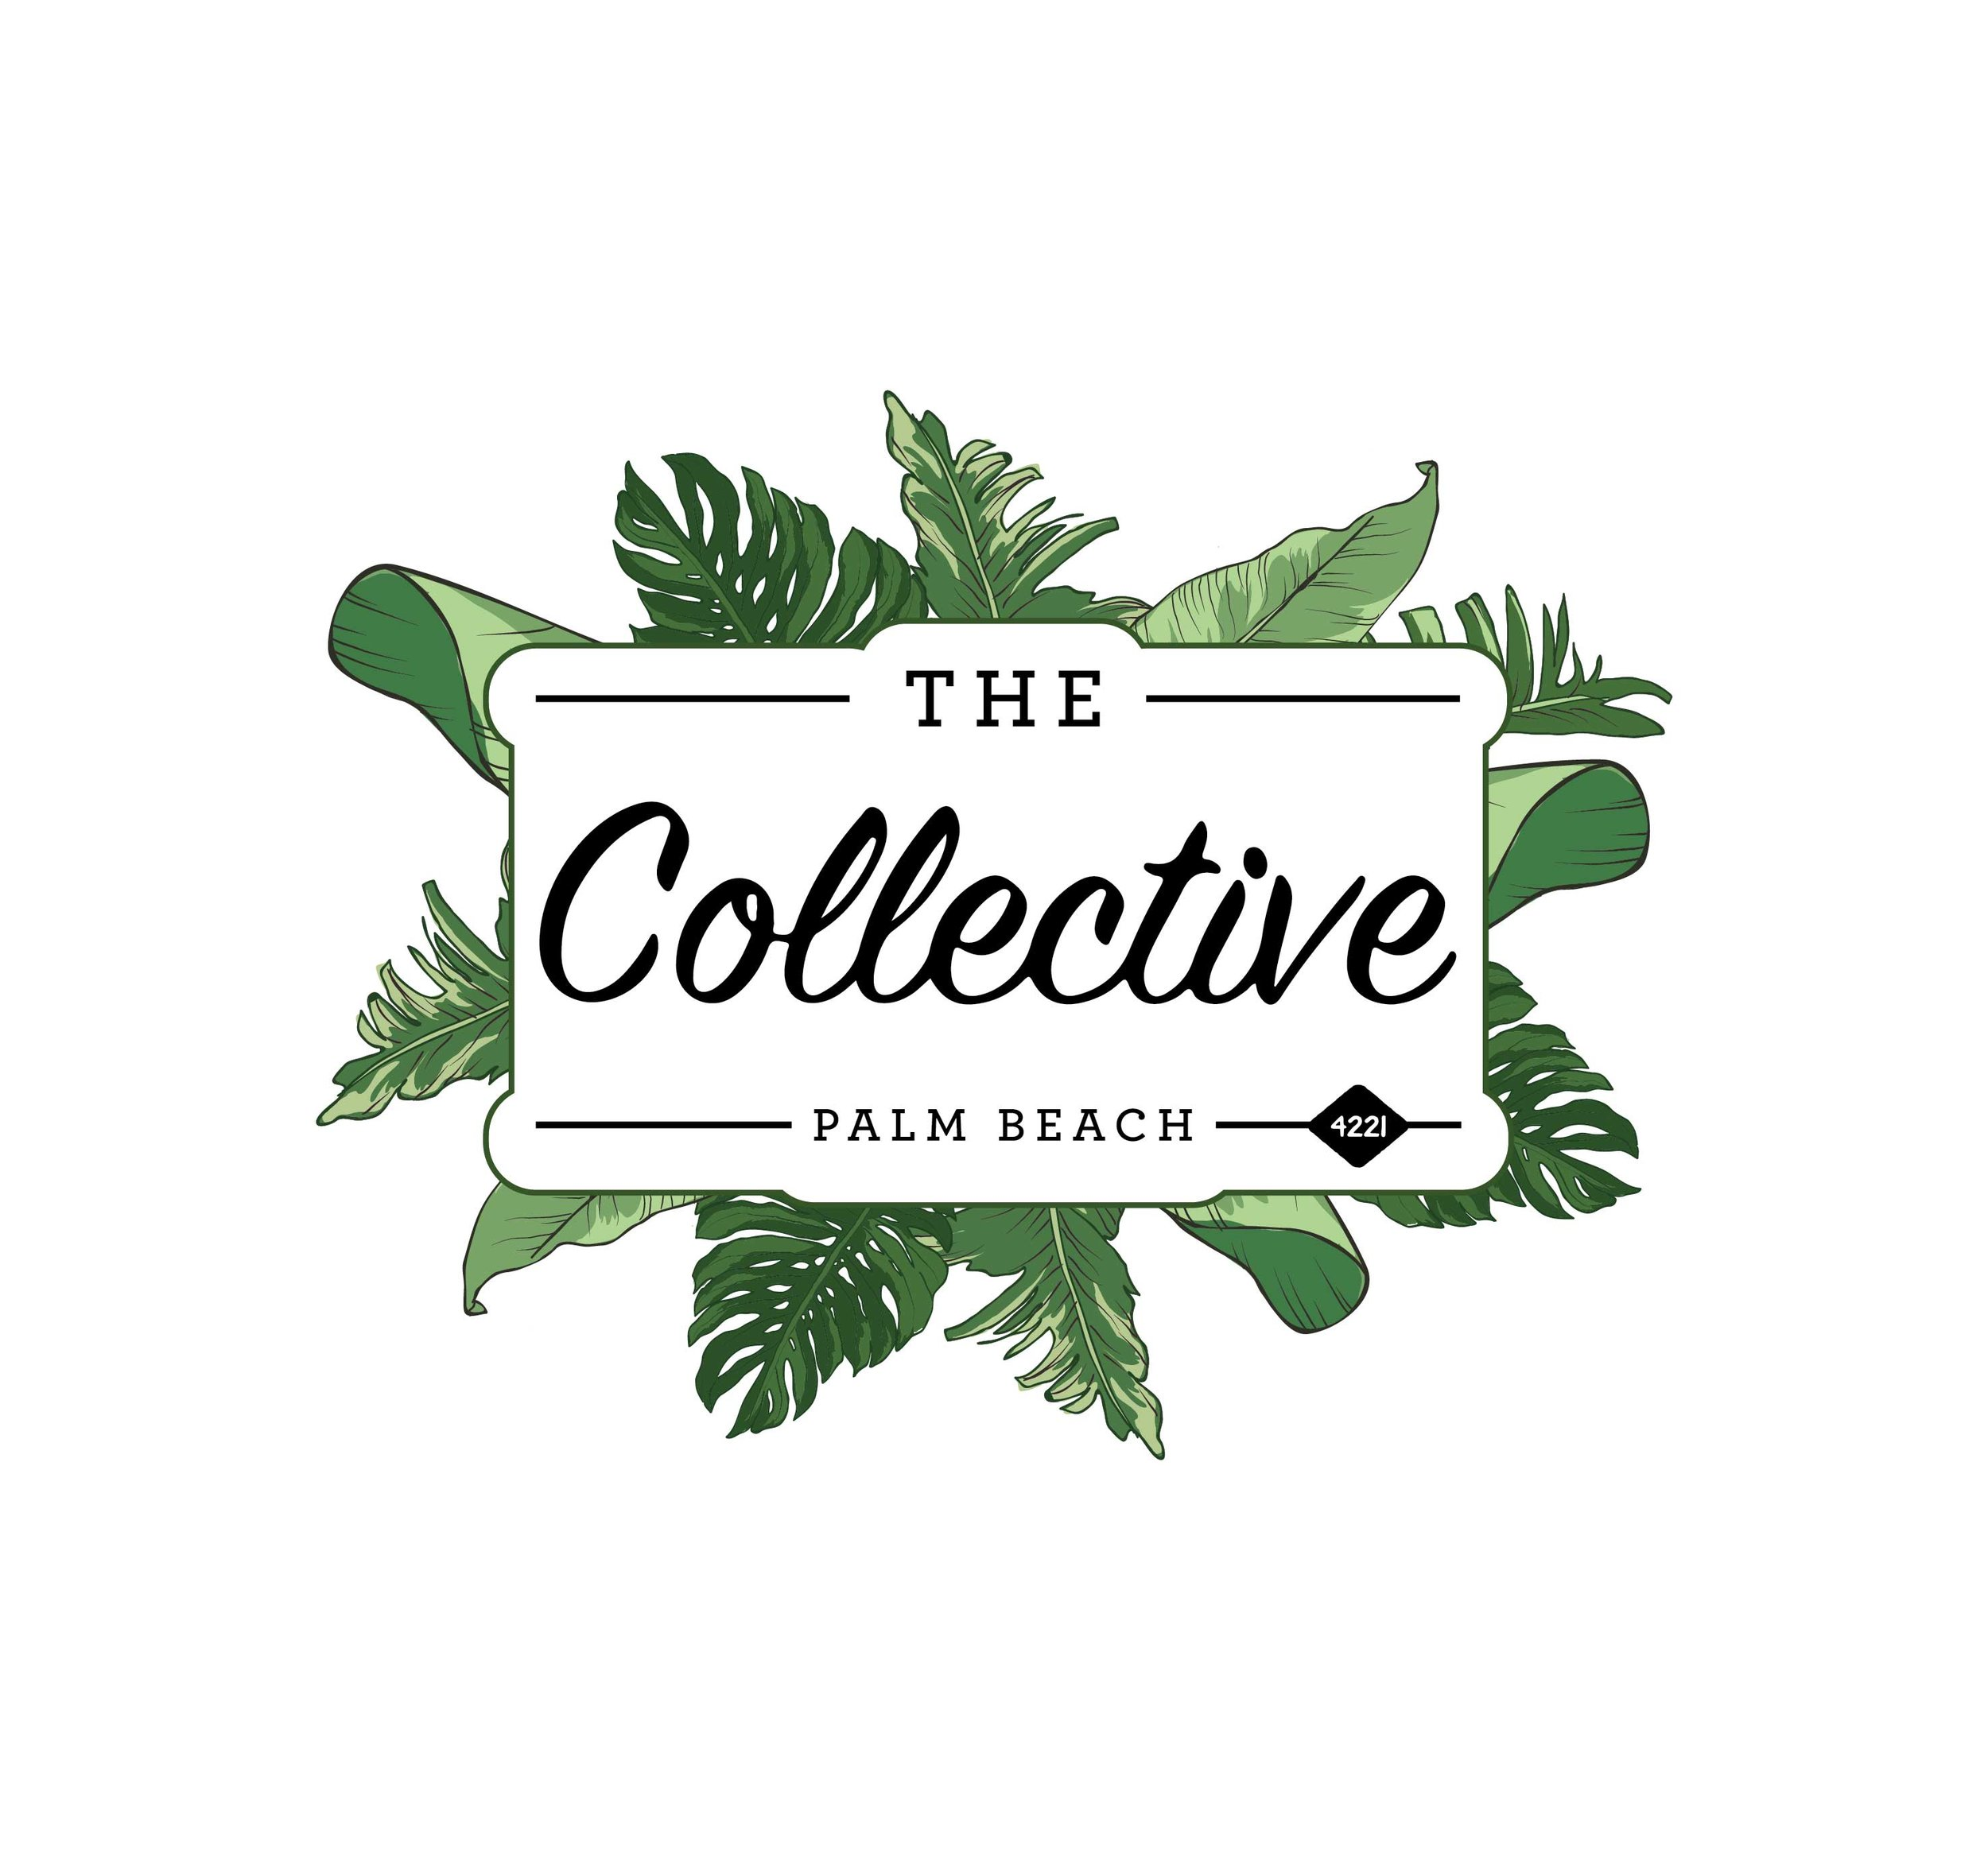 TheCollective-Final-01.jpg